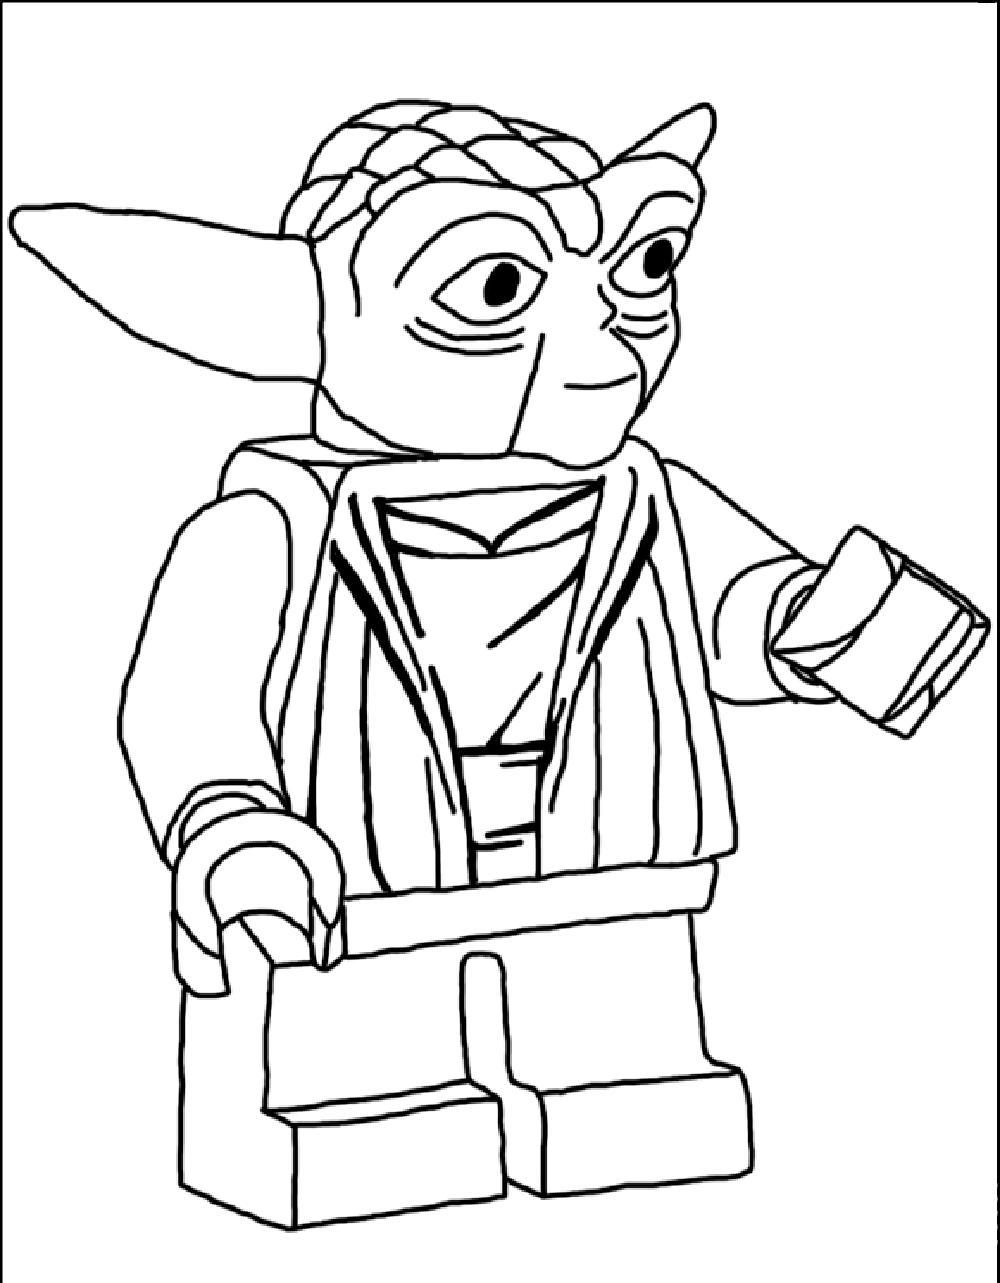 lego coloring sheets printables create your own lego coloring pages for kids sheets coloring lego printables